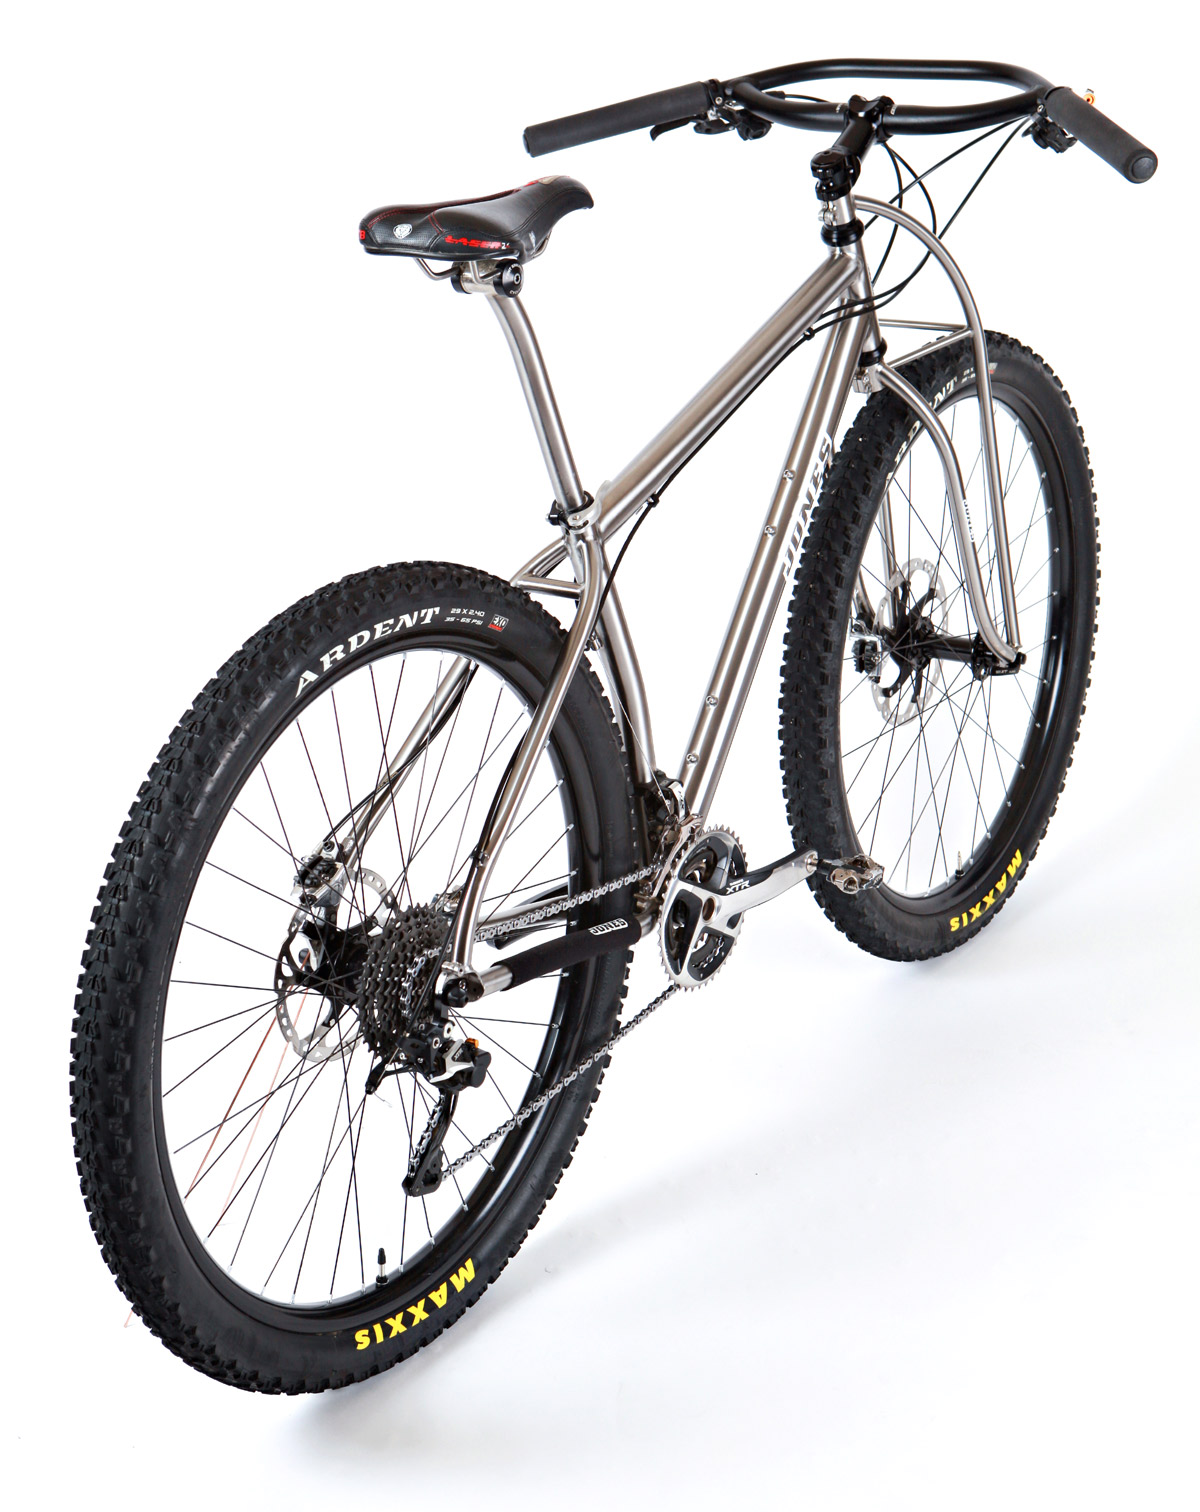 Jones Ti Diamond bike